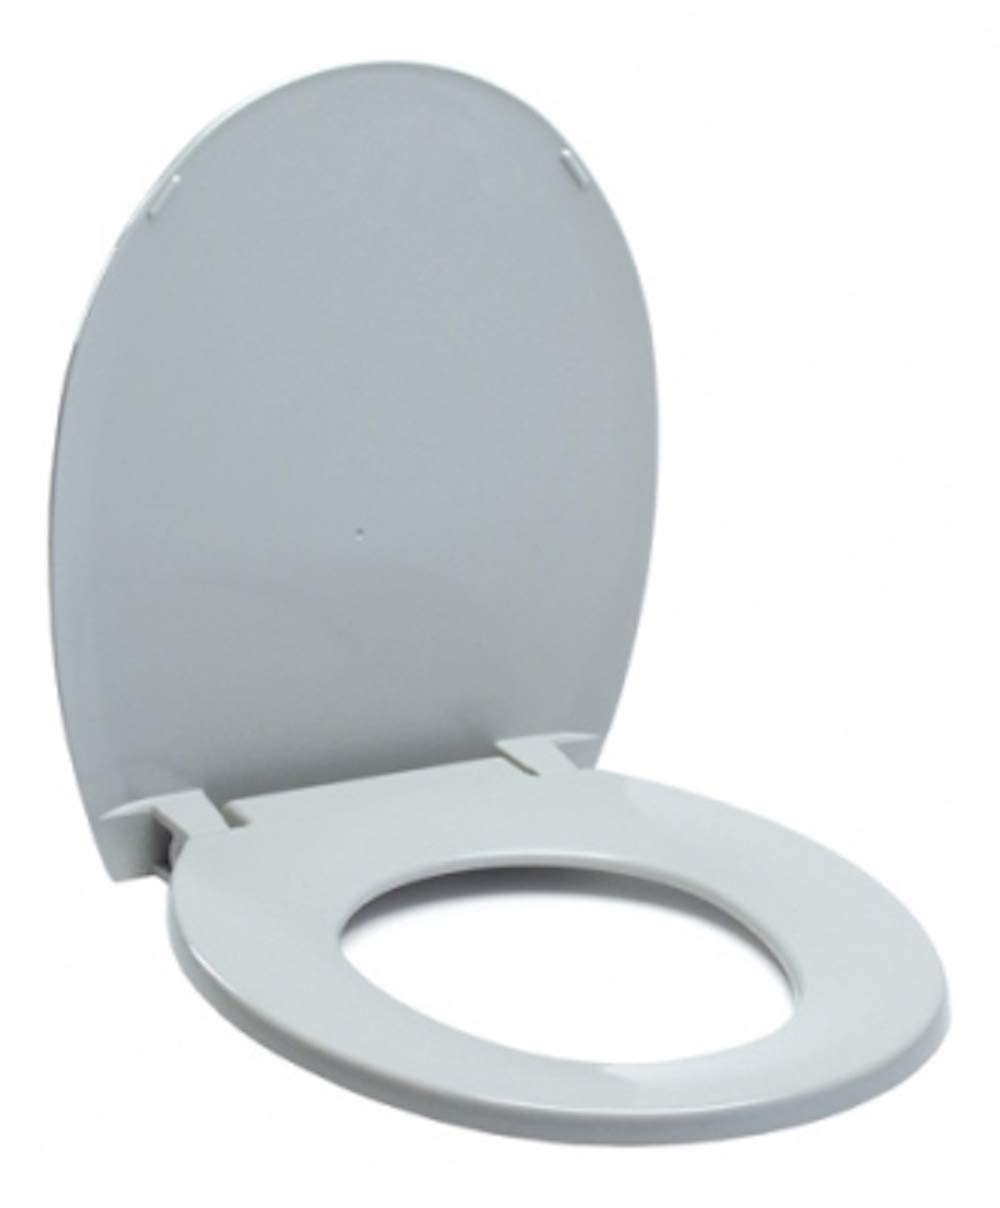 Pivit Portable Toilet Replacement Seat and Lid for Adult 3-in-1 Bedside Commodes | Sturdy Odor Resistant Plastic Potty Chair Seats Snaps-On Easily | Universal Design Fits Most Handicap Raised Seats